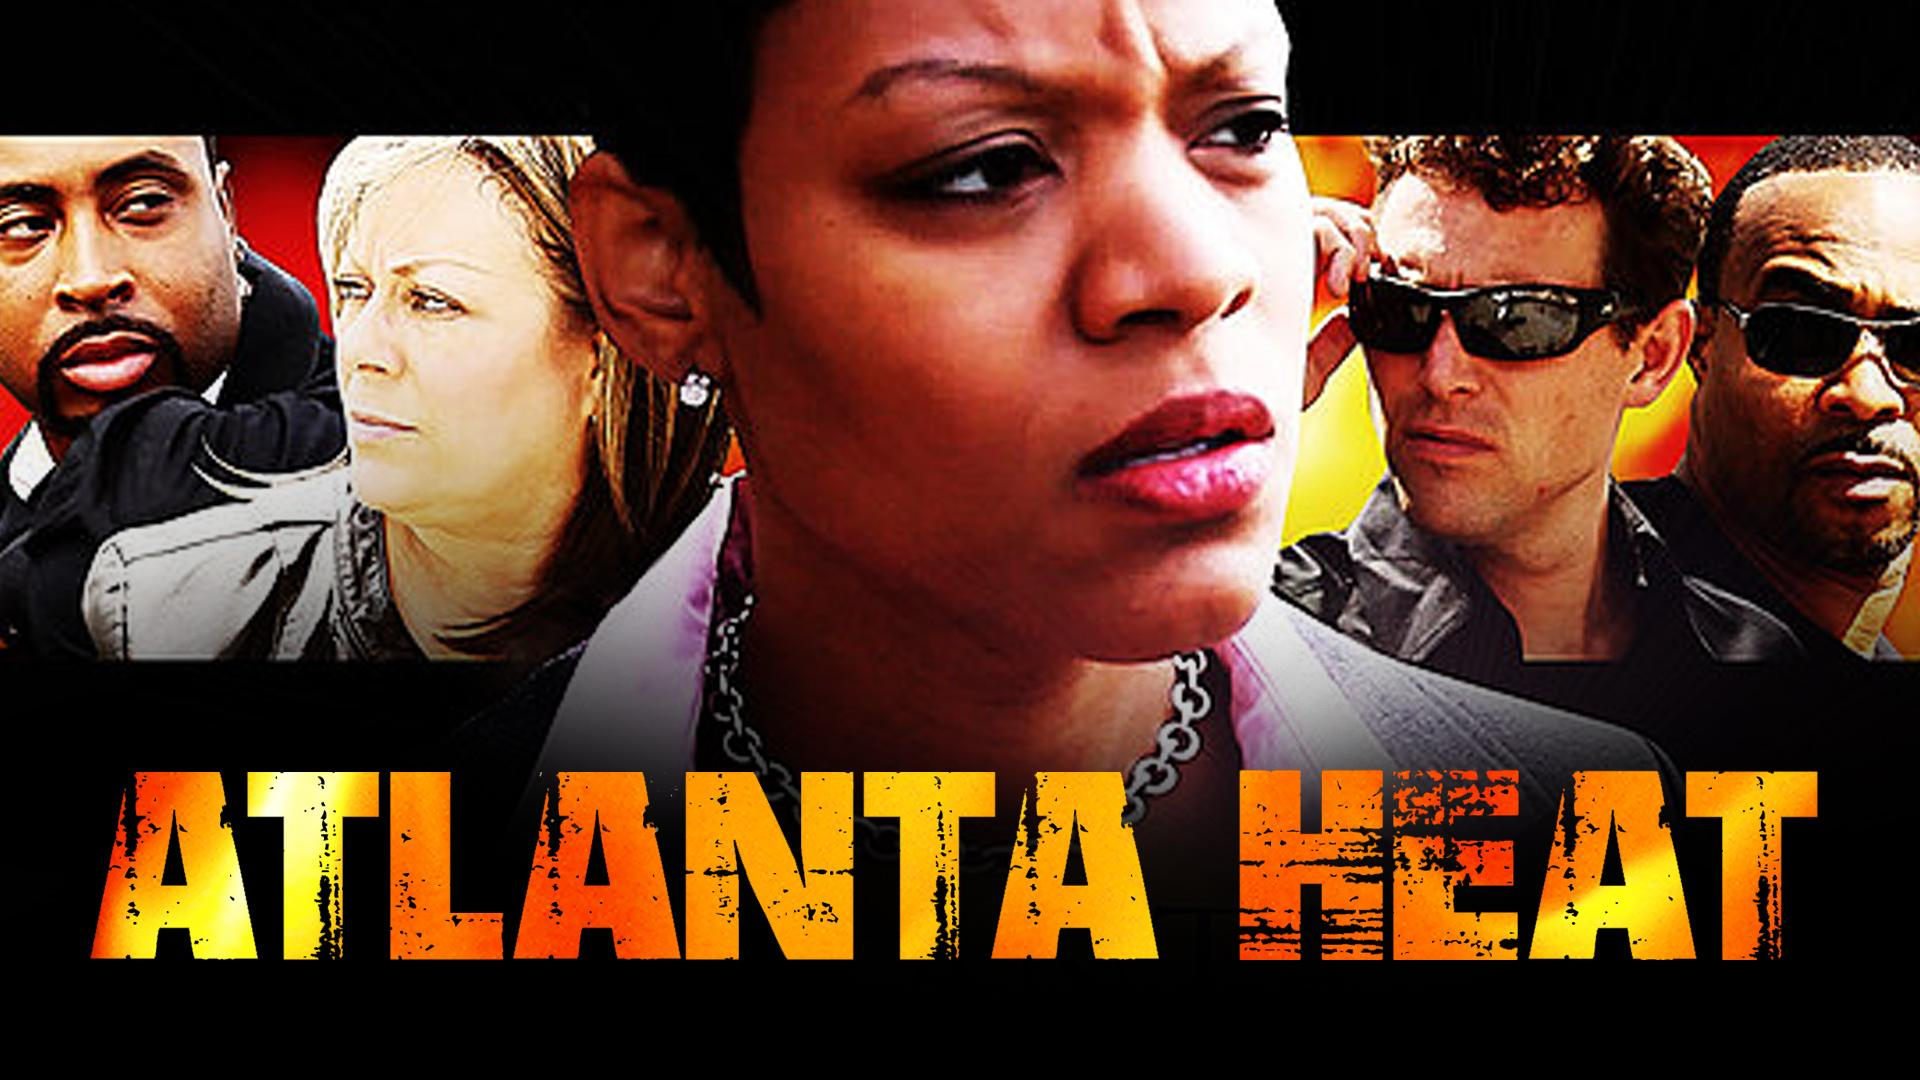 Atlanta Heat 1 - Action/Thriller category image